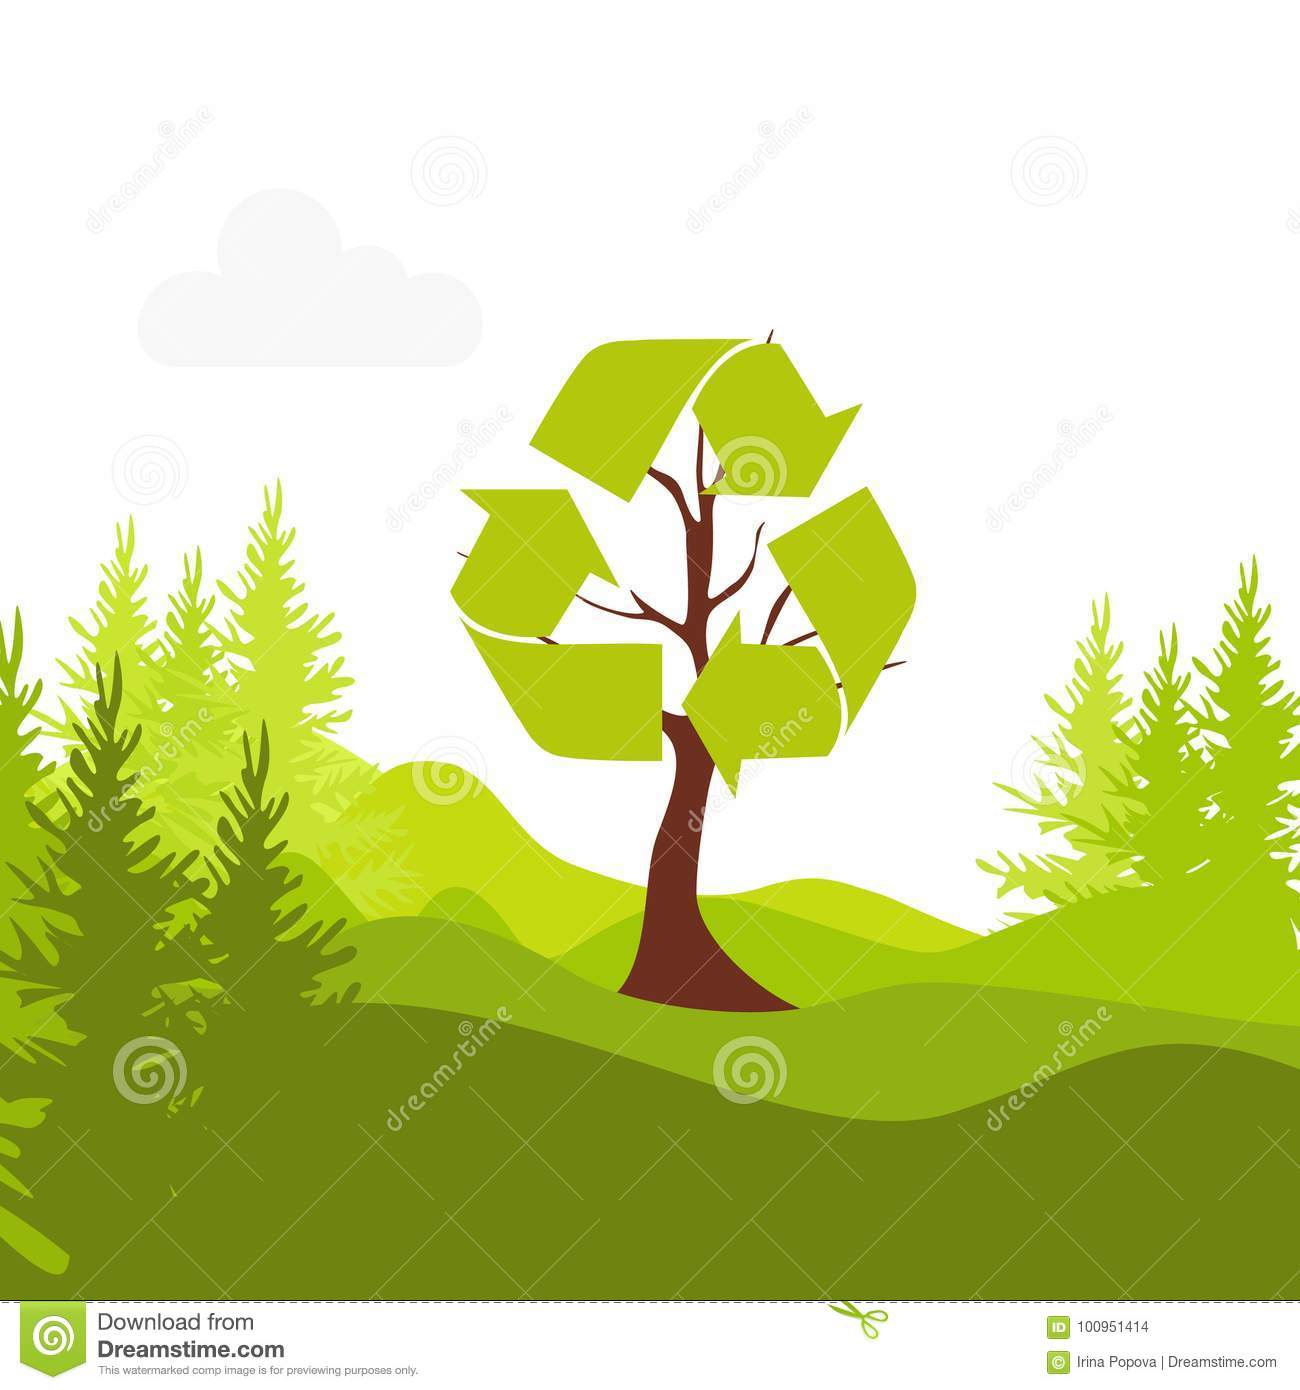 Eco Friendly The Recycling Symbol On The Tree The Concept Of E